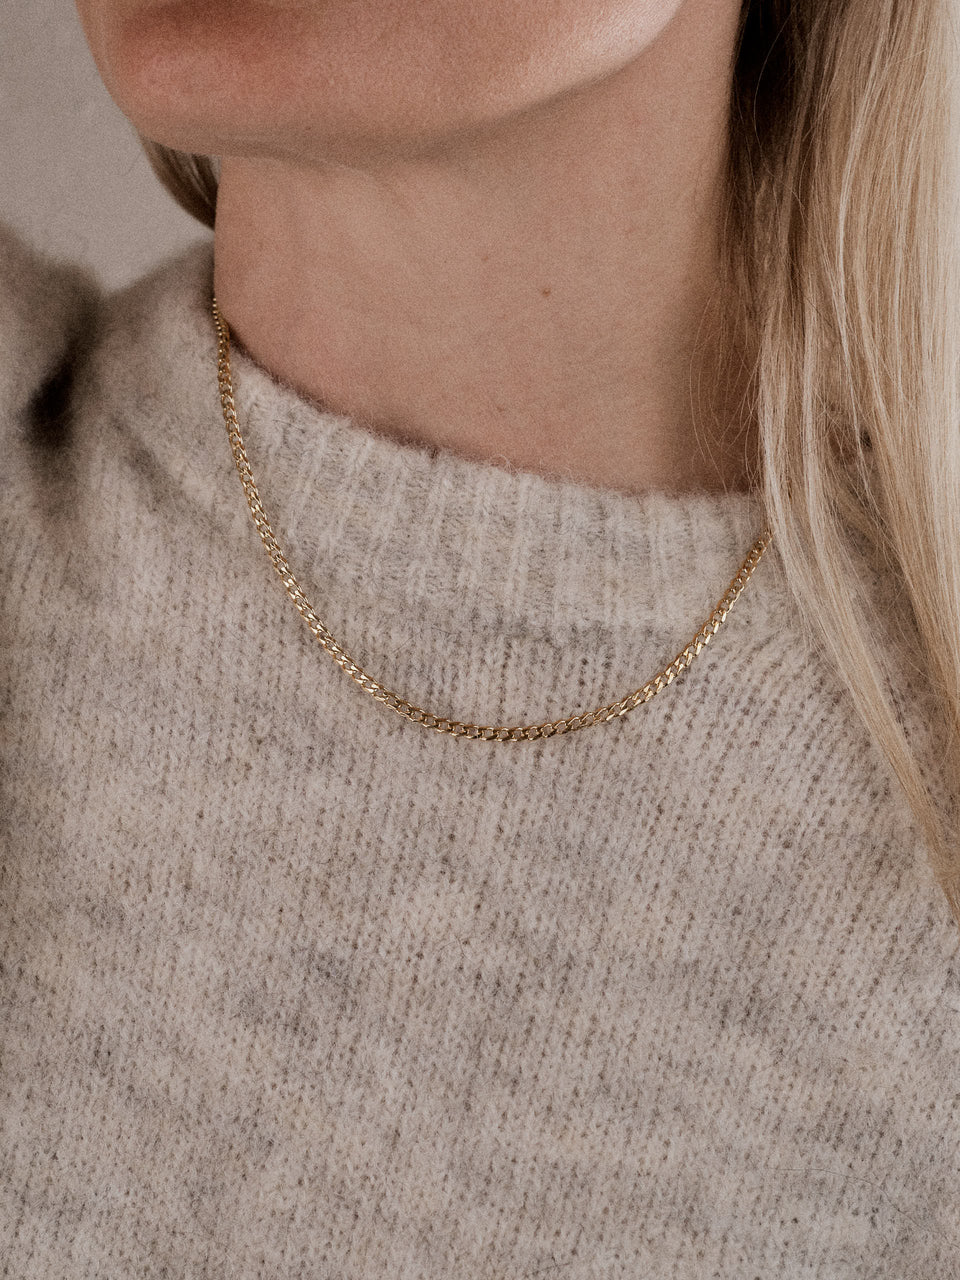 Maria Black / Saffi Necklace / Halskjede i gull